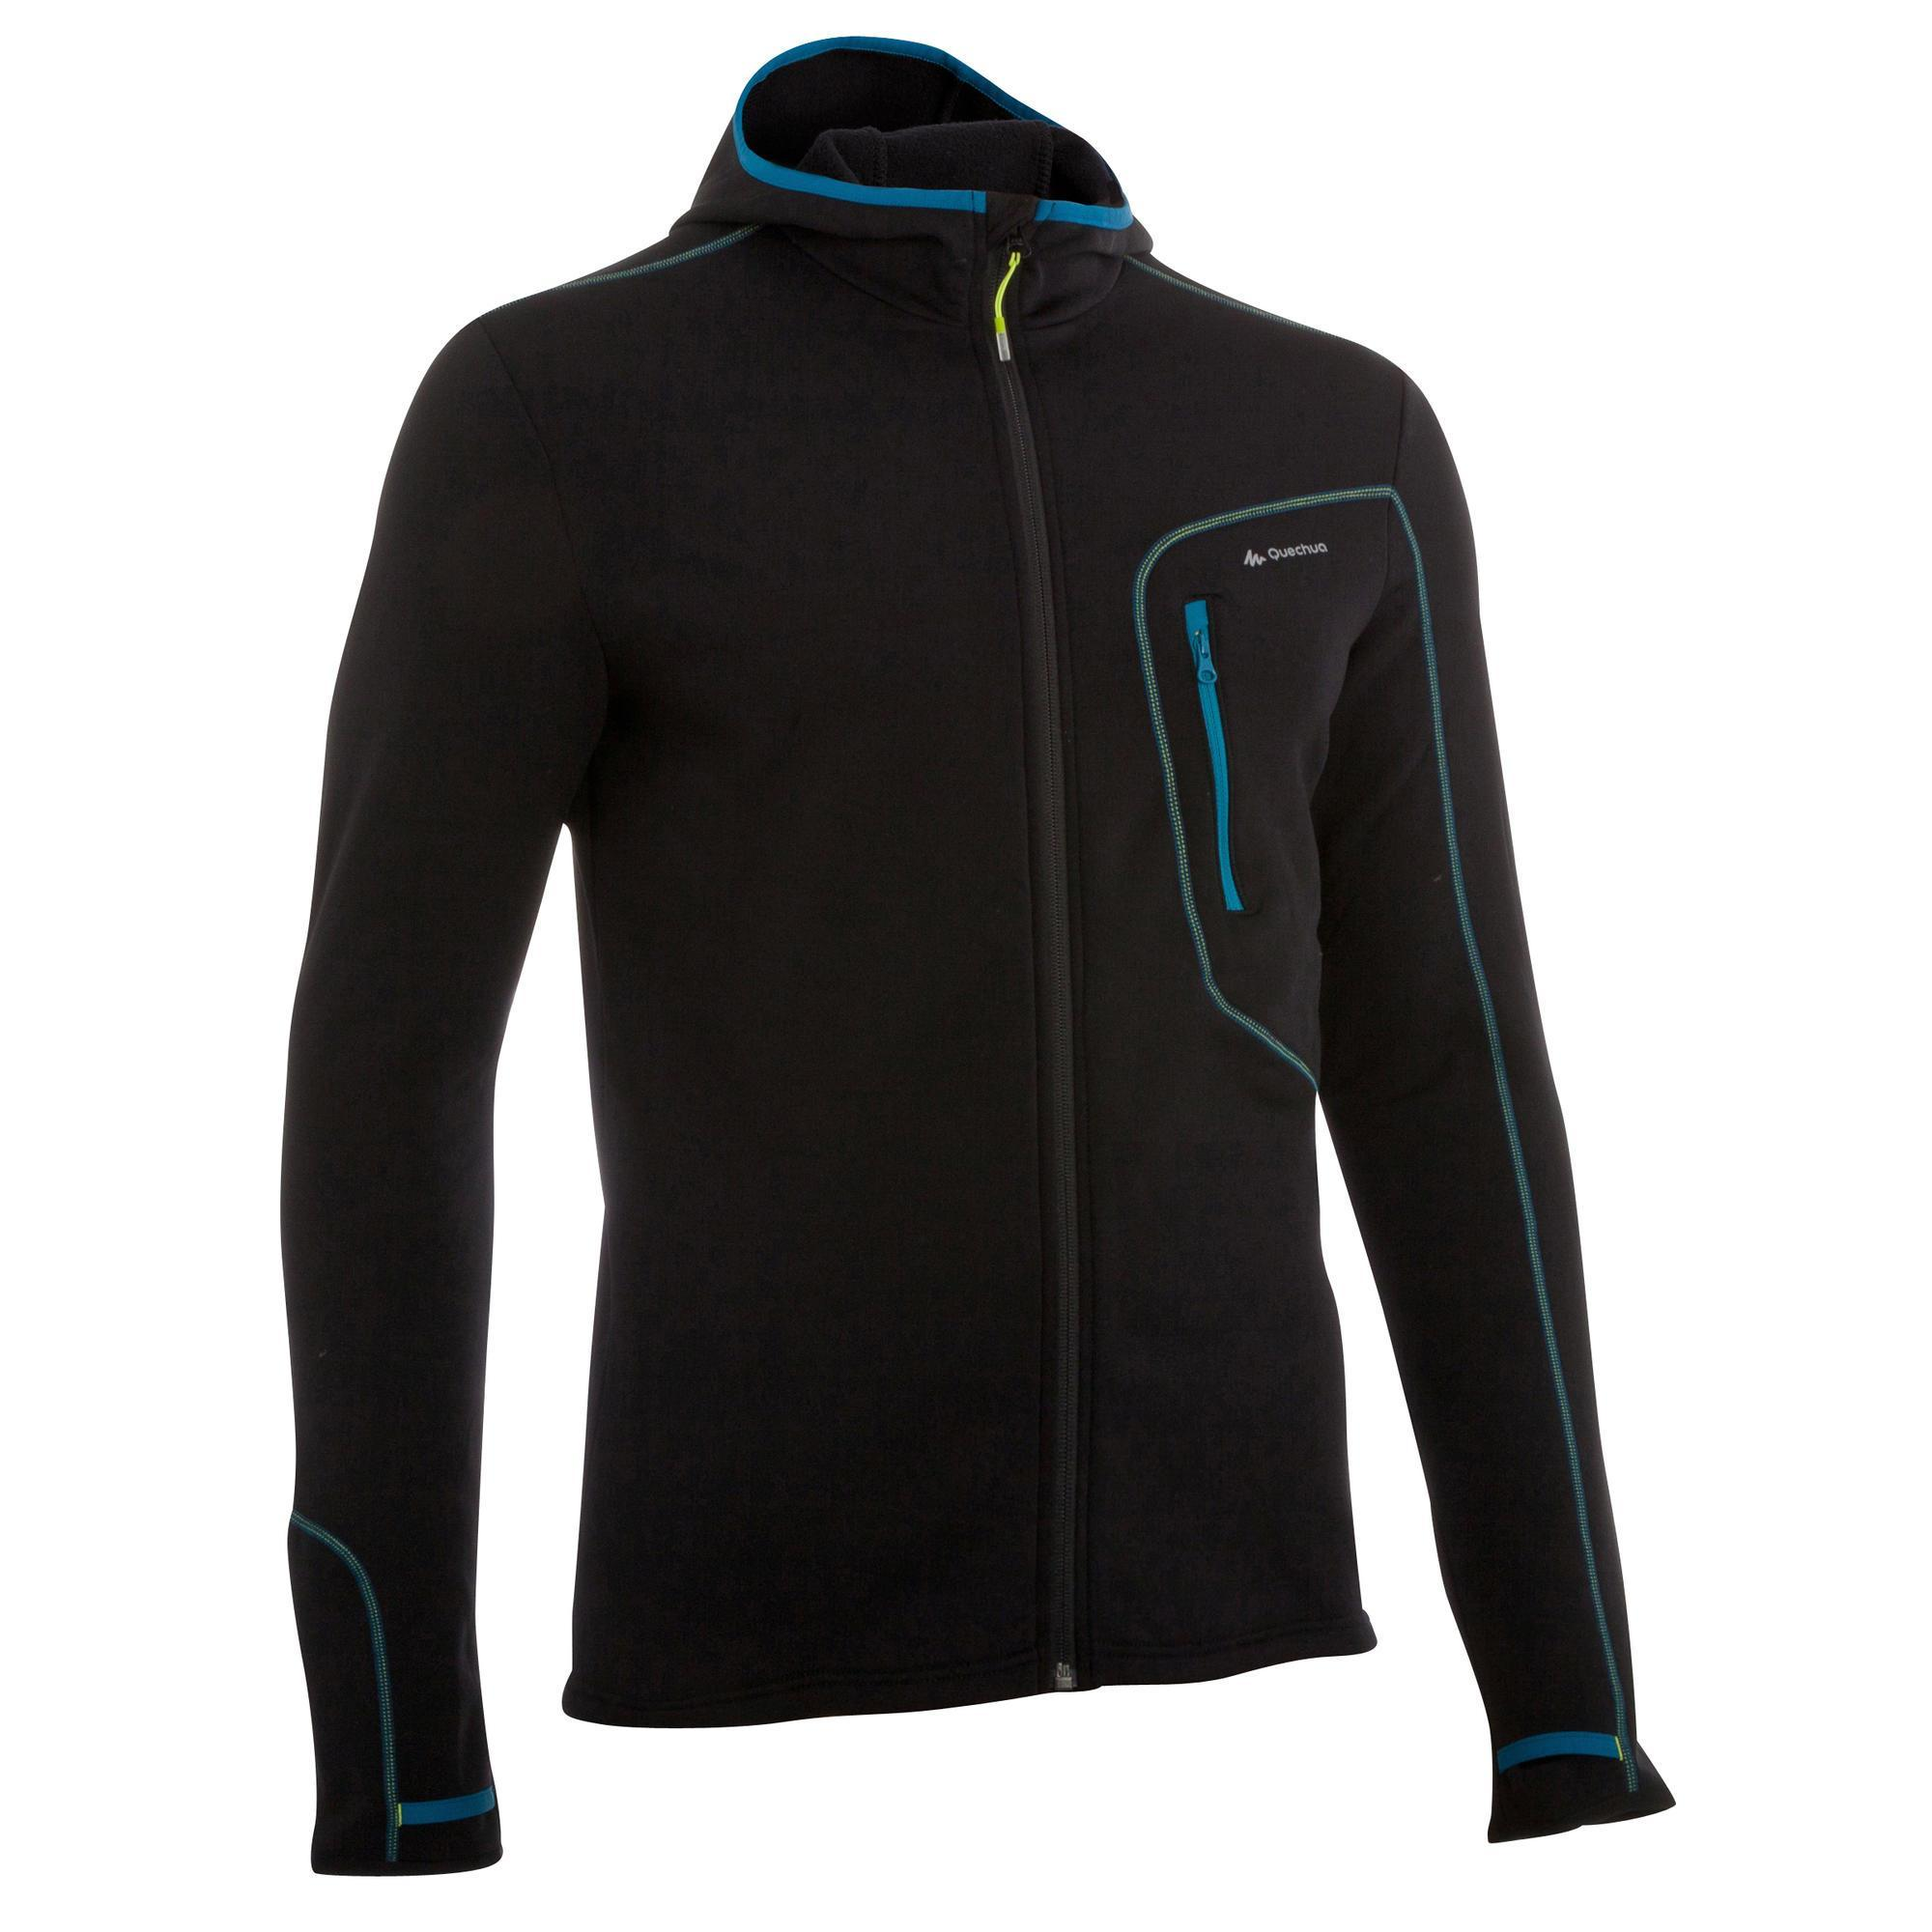 Veste de sport homme intersport